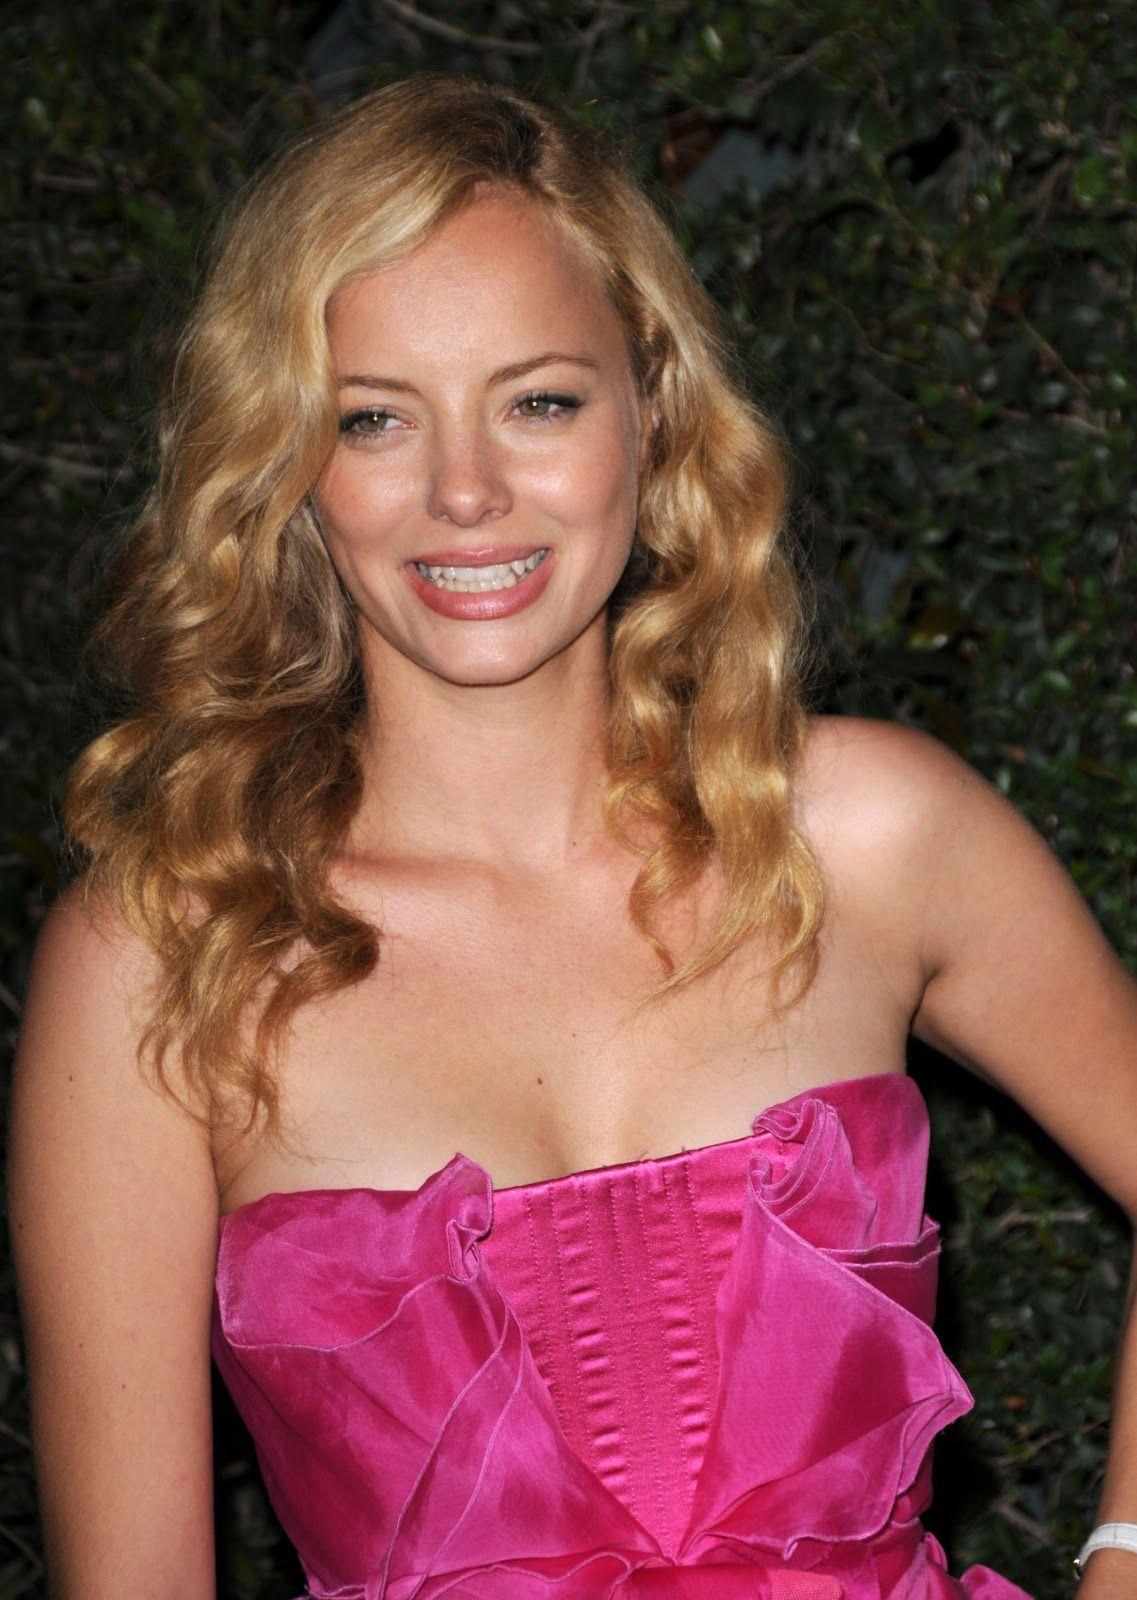 Hollywood Actress Wallpaper: Bijou Phillips HD Wallpapers